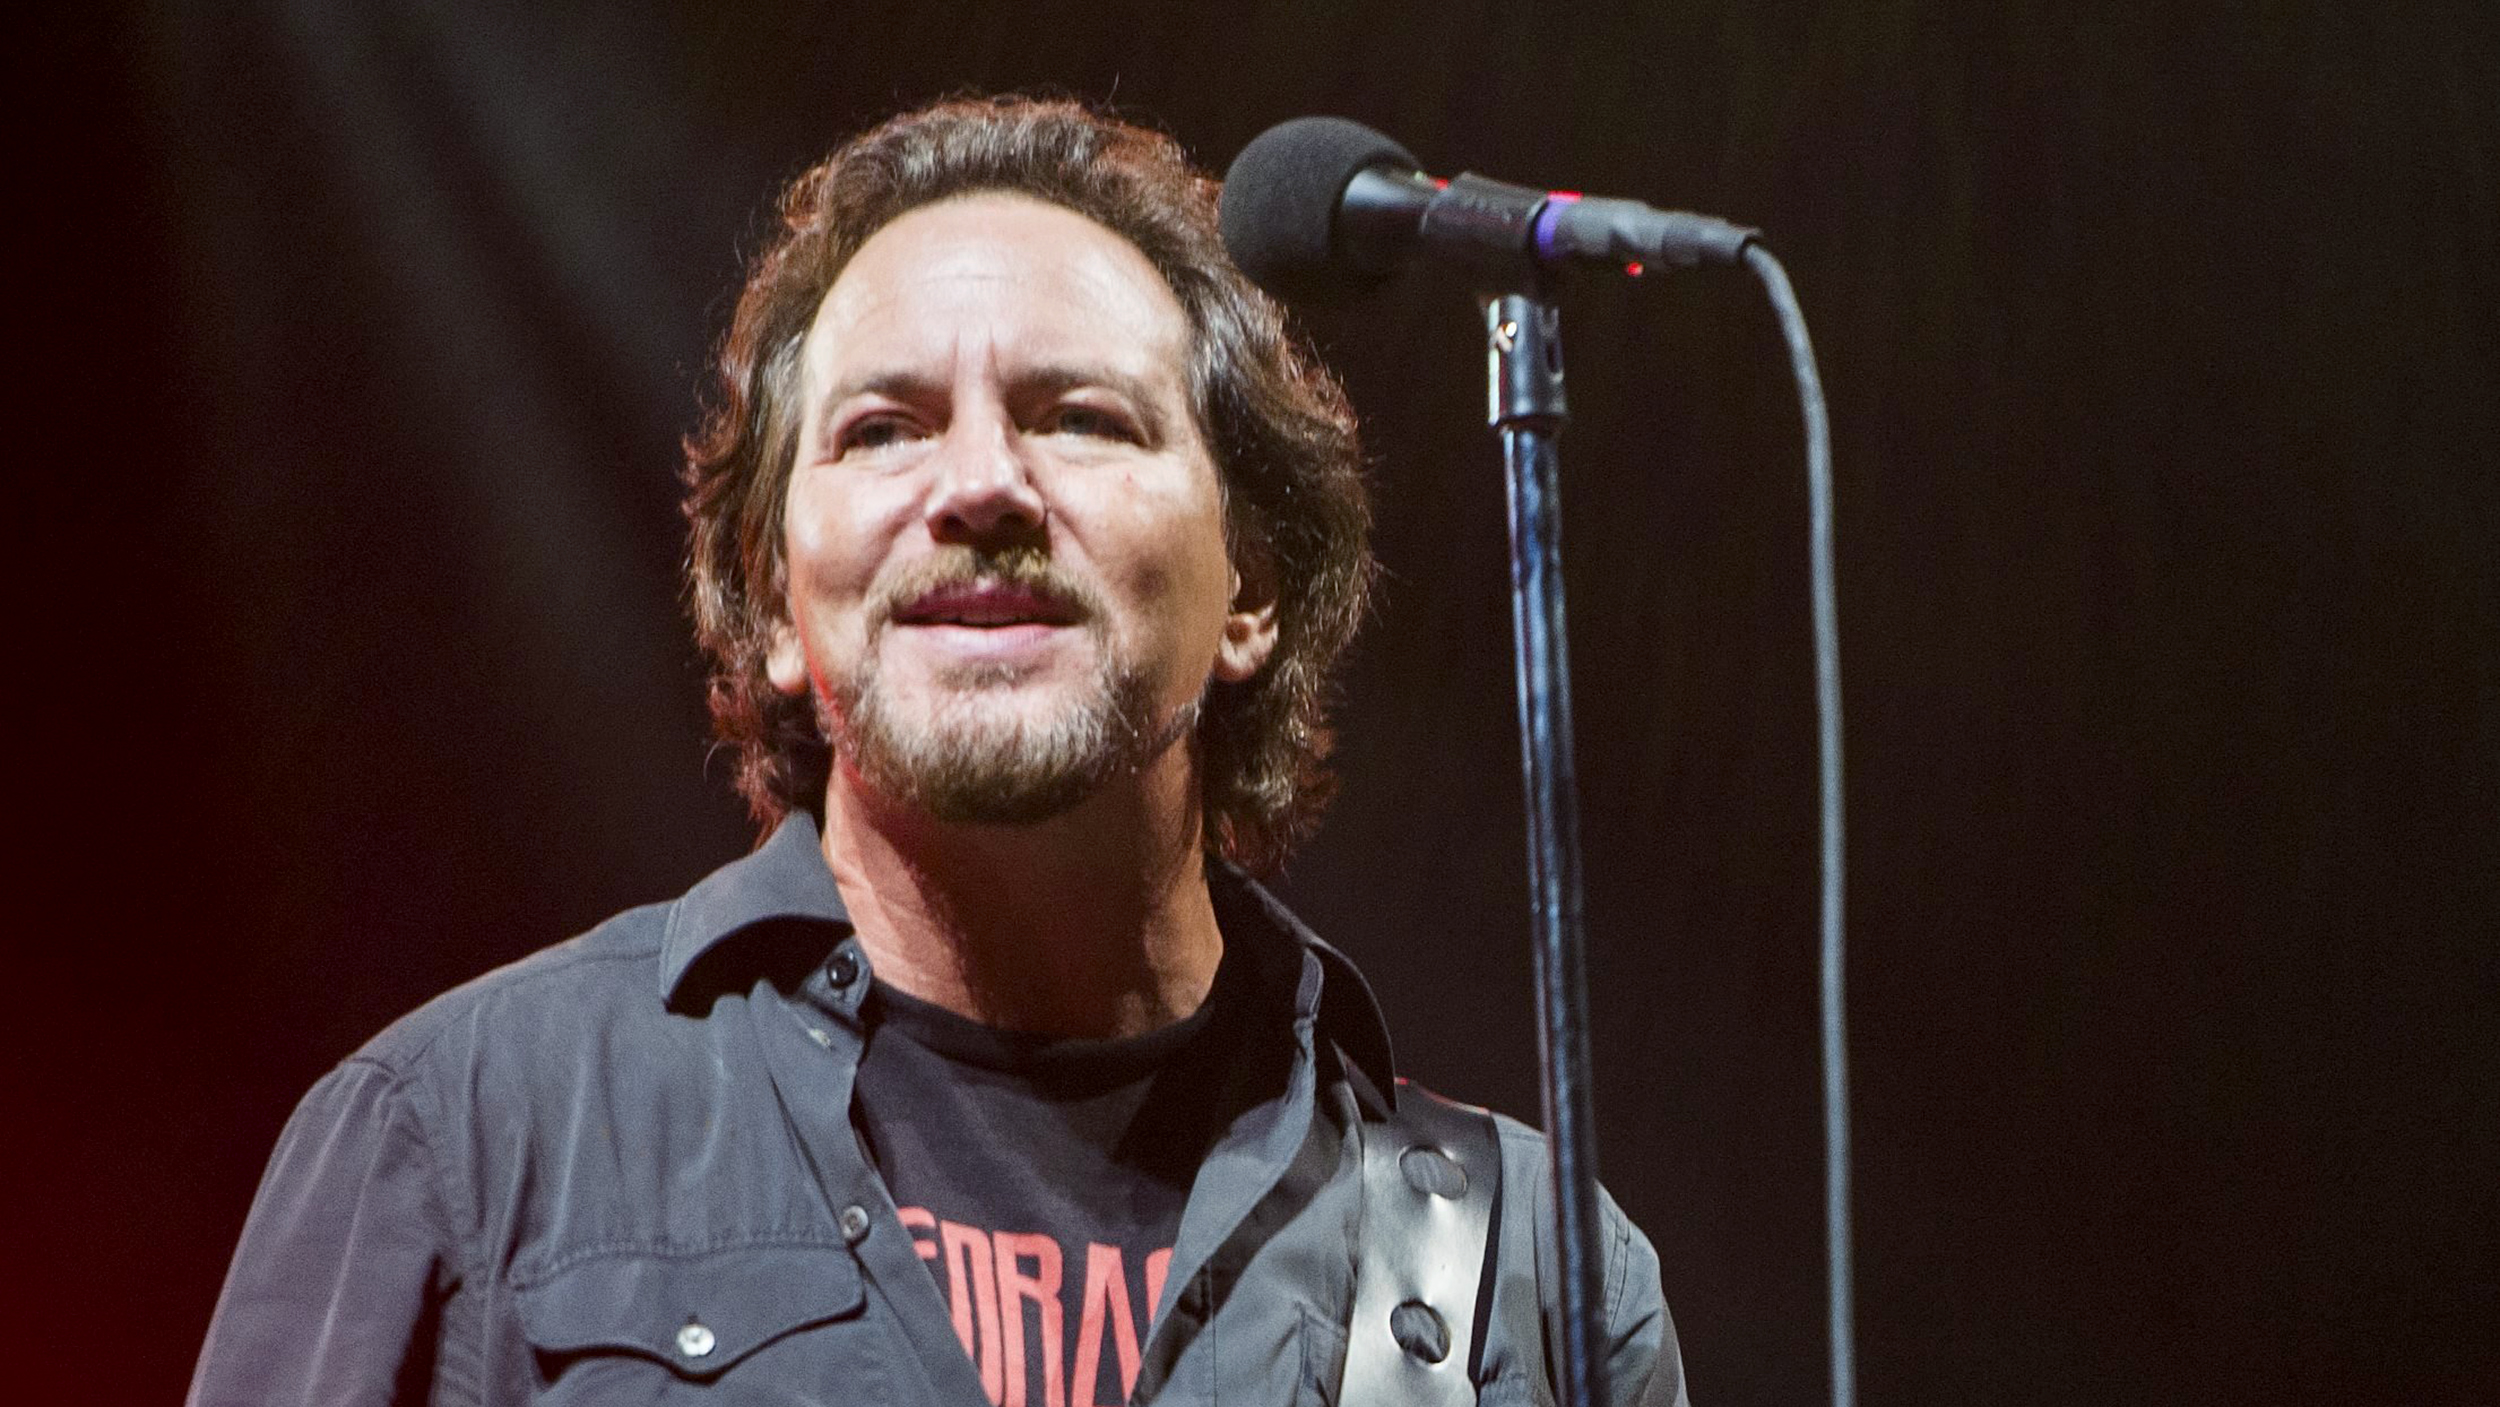 eddie vedder – long nightseddie vedder – long nights, eddie vedder – society, eddie vedder guaranteed, eddie vedder – no ceiling, eddie vedder society chords, eddie vedder young, eddie vedder hard sun, eddie vedder – long nights скачать, eddie vedder перевод, eddie vedder society аккорды, eddie vedder rise, eddie vedder chords, eddie vedder ukulele, eddie vedder - out of sand, eddie vedder rise lyrics, eddie vedder society скачать, eddie vedder guaranteed скачать, eddie vedder last fm, eddie vedder слушать, eddie vedder guaranteed tab